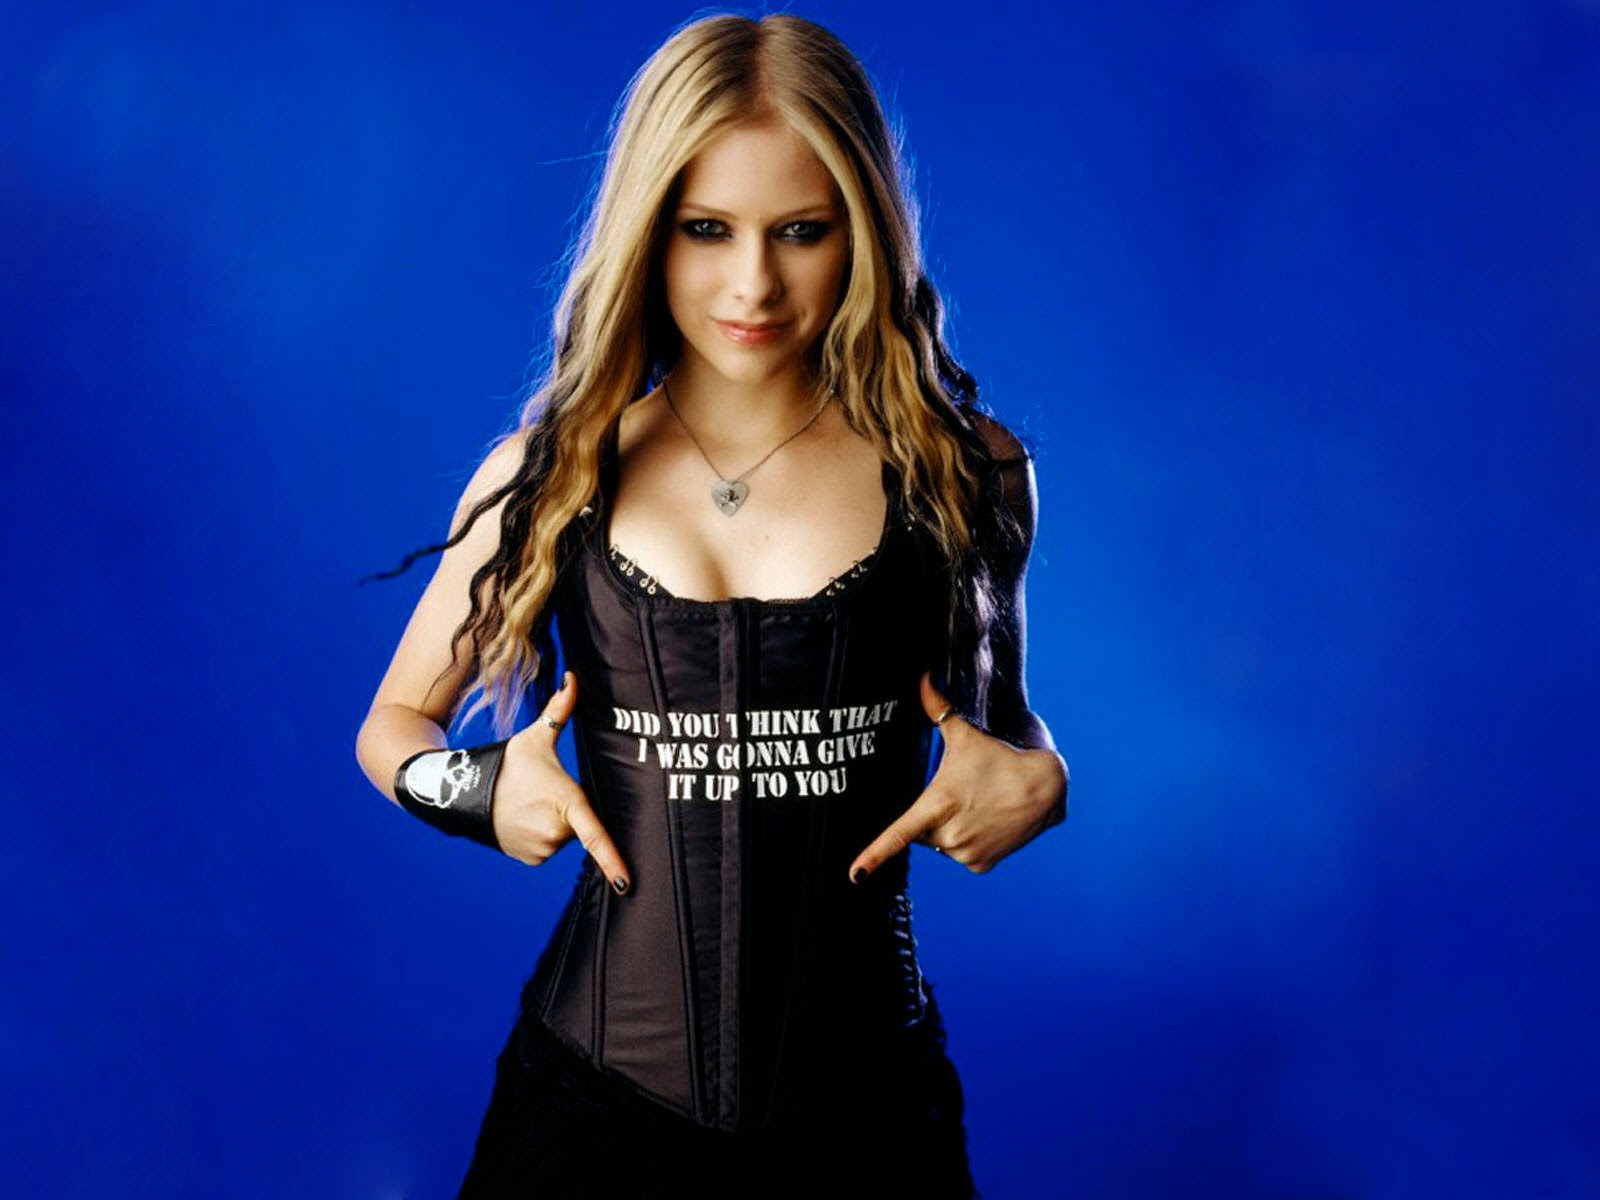 avril lavigne rock n roll wallpaper hd